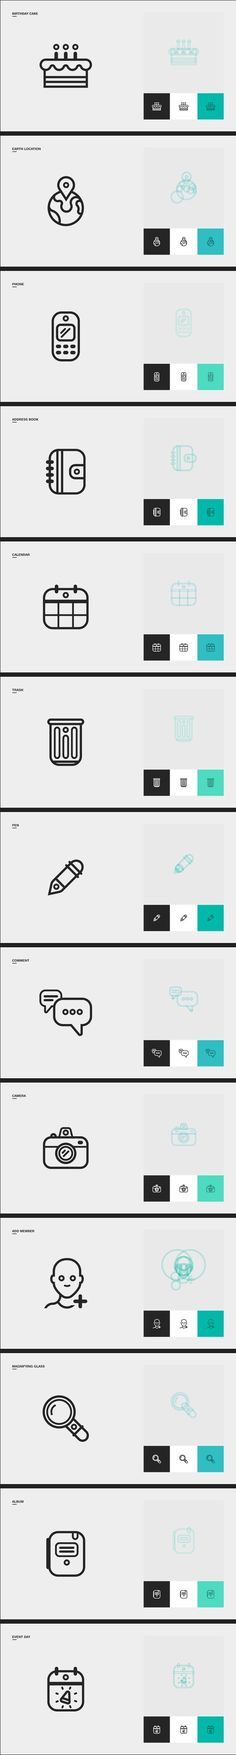 Family pics icons by Clément Pavageau, via Behance